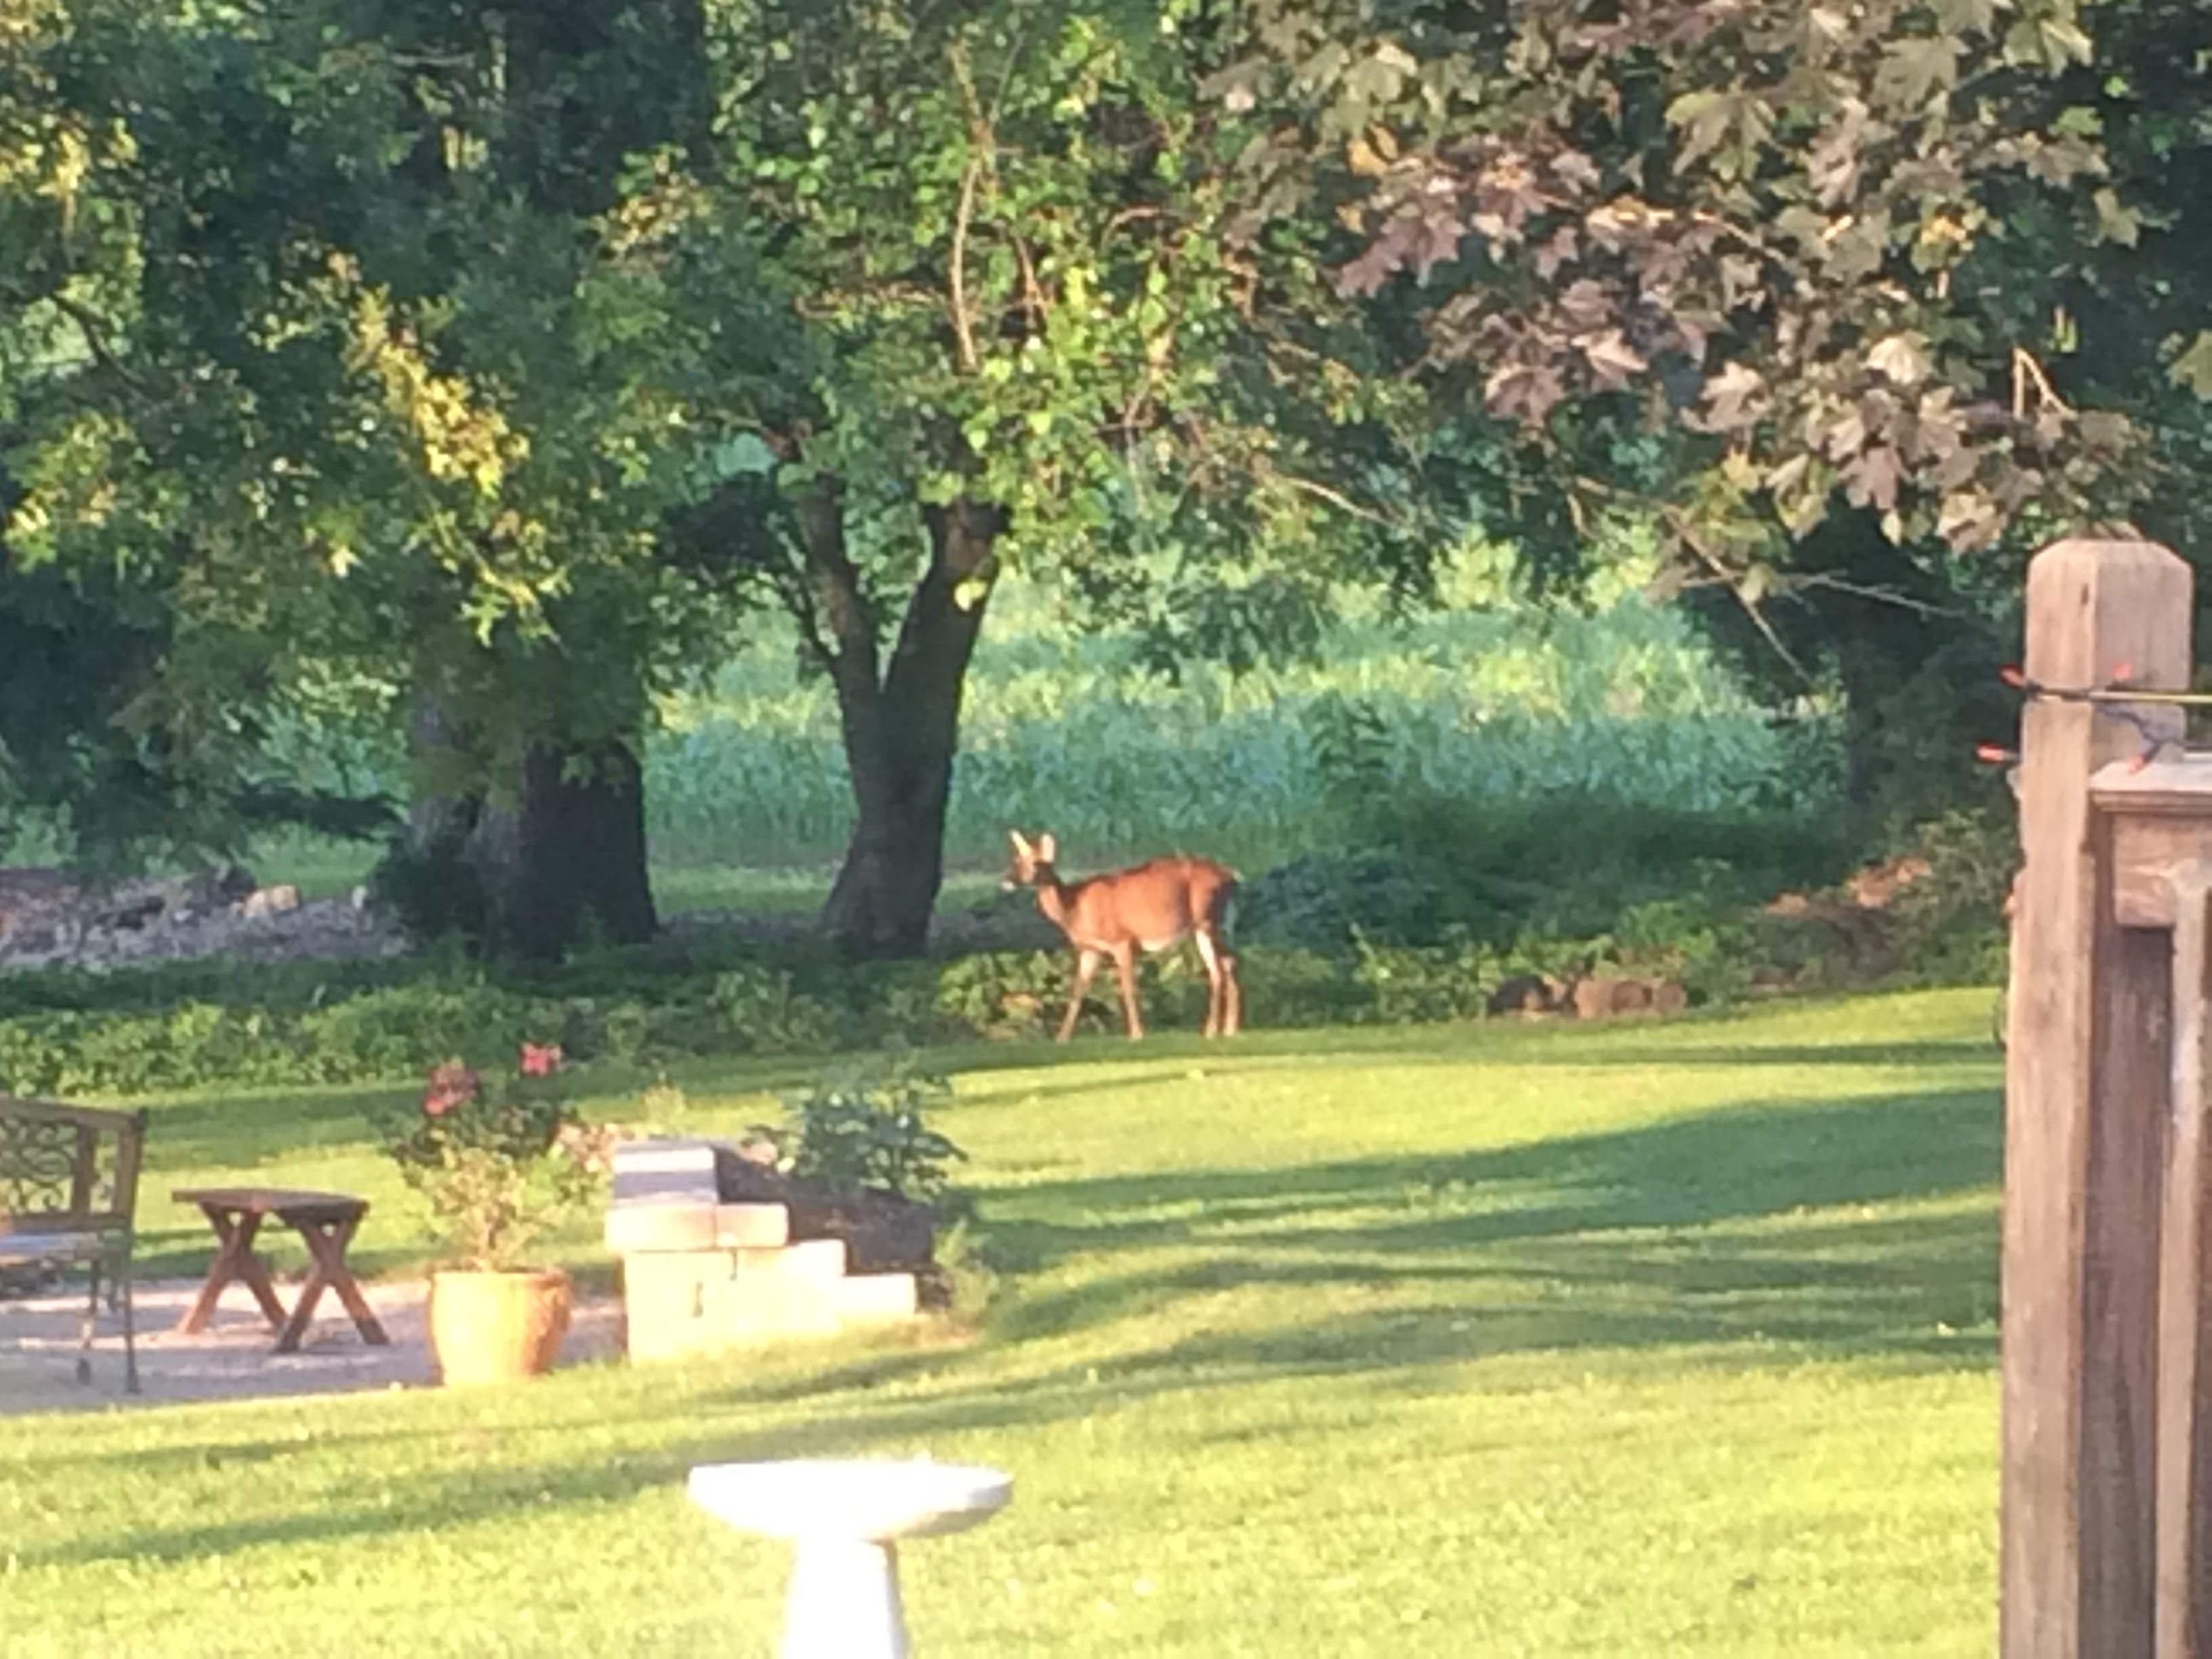 Backyard doe